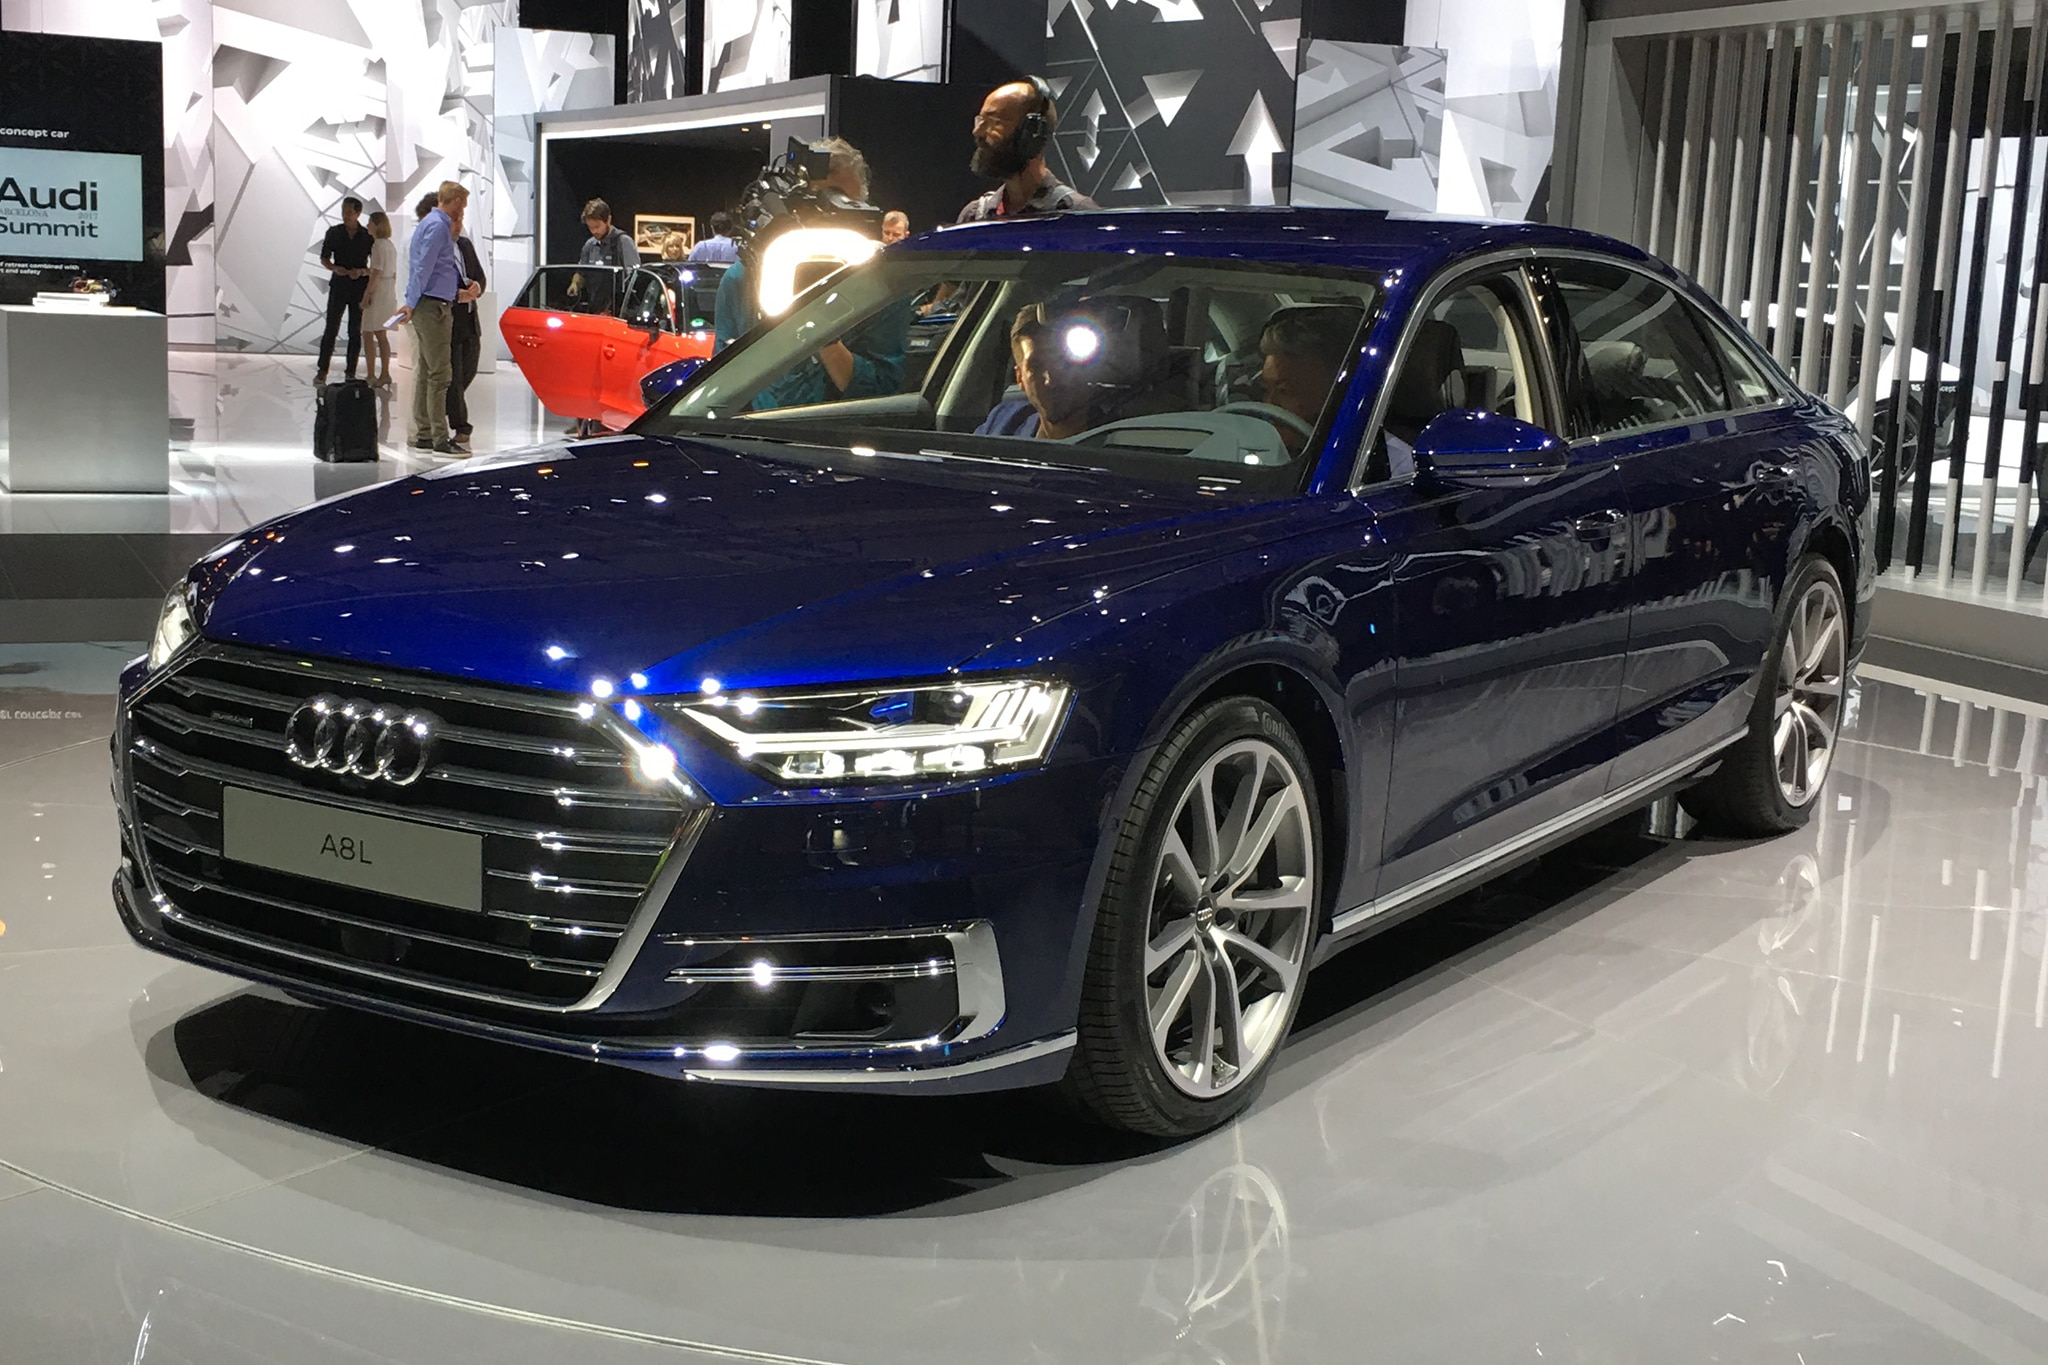 2019 audi a8 rolls in ready to drive itself automobile. Black Bedroom Furniture Sets. Home Design Ideas